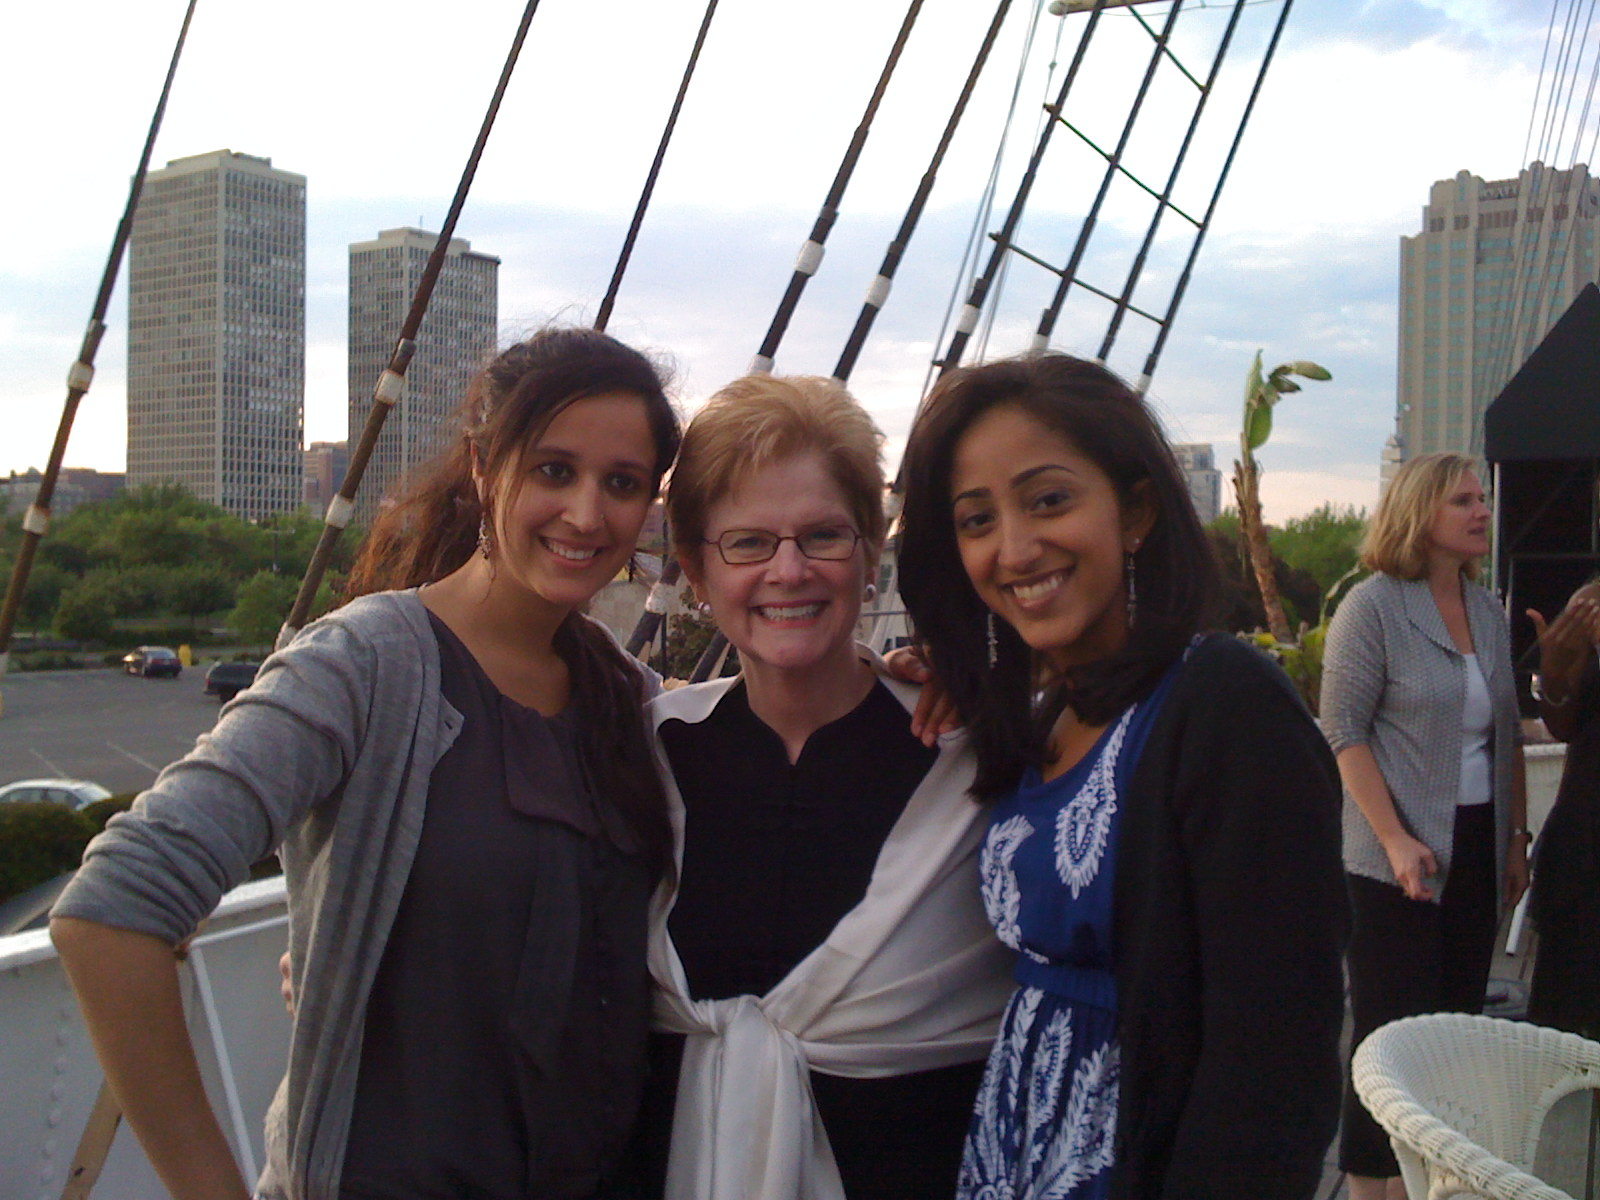 Class of 2009 Co-Presidents Deep Sing and Trina Banerji on the Senior Dinner Cruise with President Jane McAuliffe